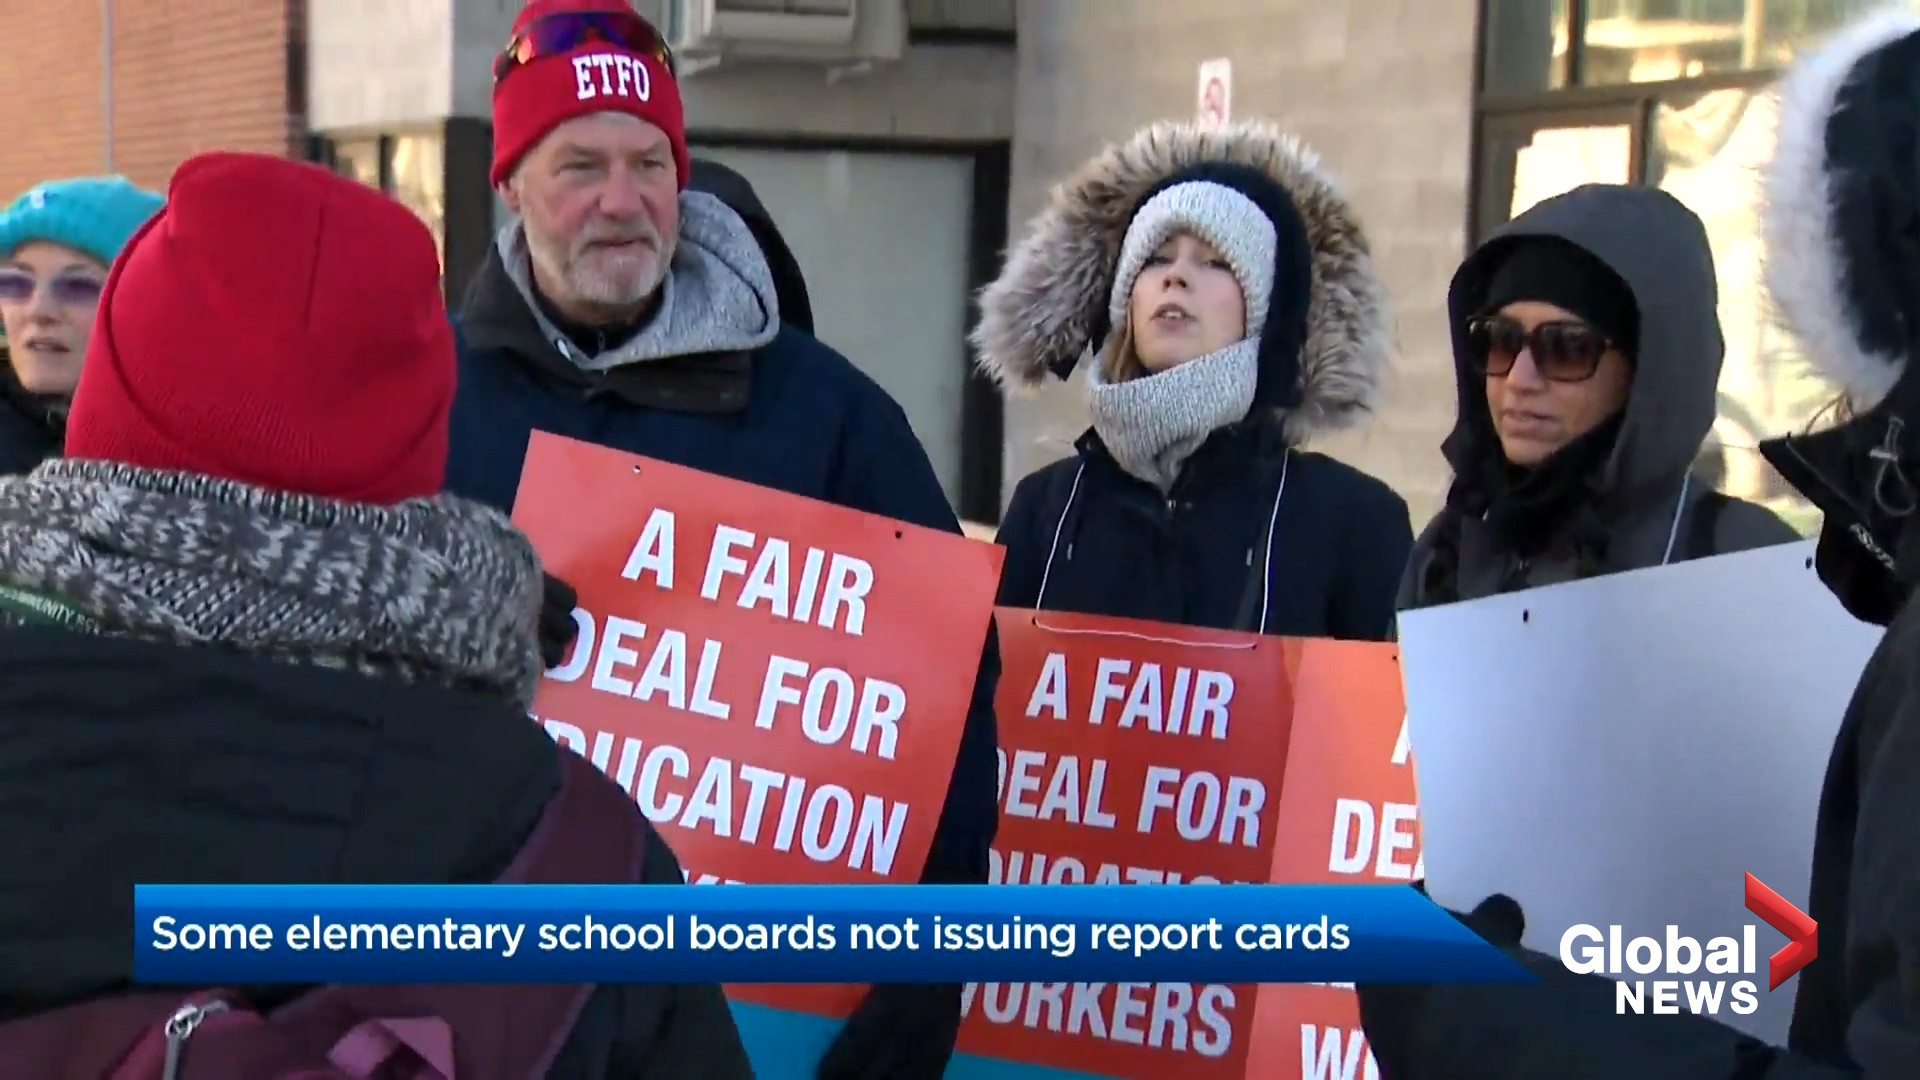 Some elementary school boards not issuing report cards amid labour action